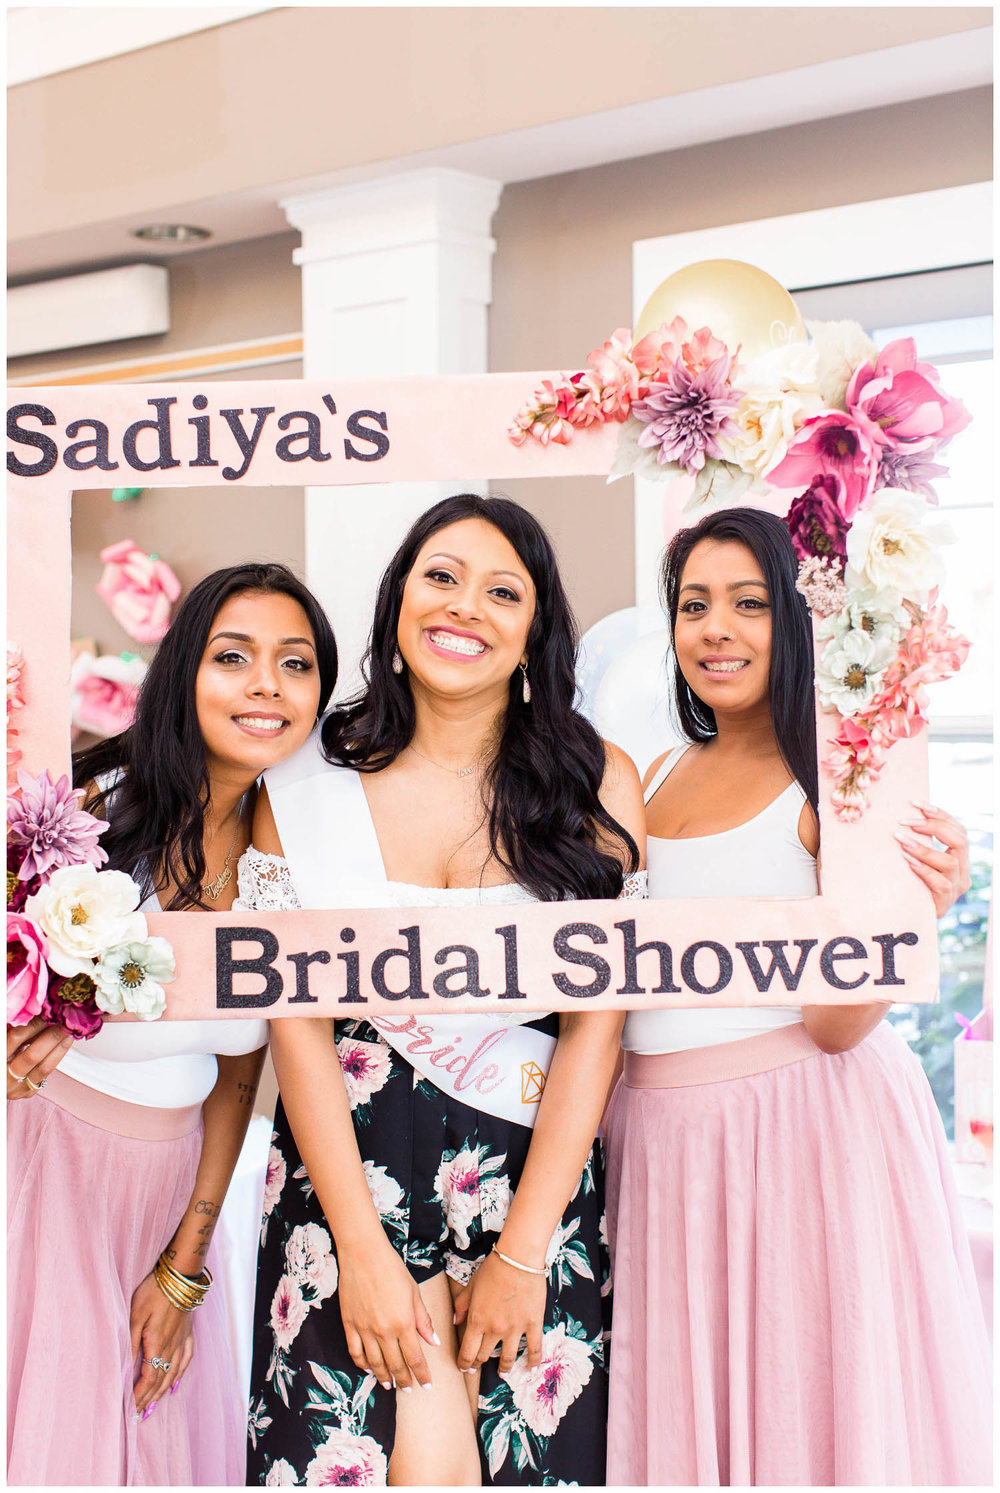 Carruthers-Marsh-Pavilion-Blush-Rose-Gold-Floral-Bridal-Shower-Toronto-Mississauga-Brampton-Scarborough-GTA-Indian-Pakistani-Muslim-Wedding-Photographer_0046.jpg